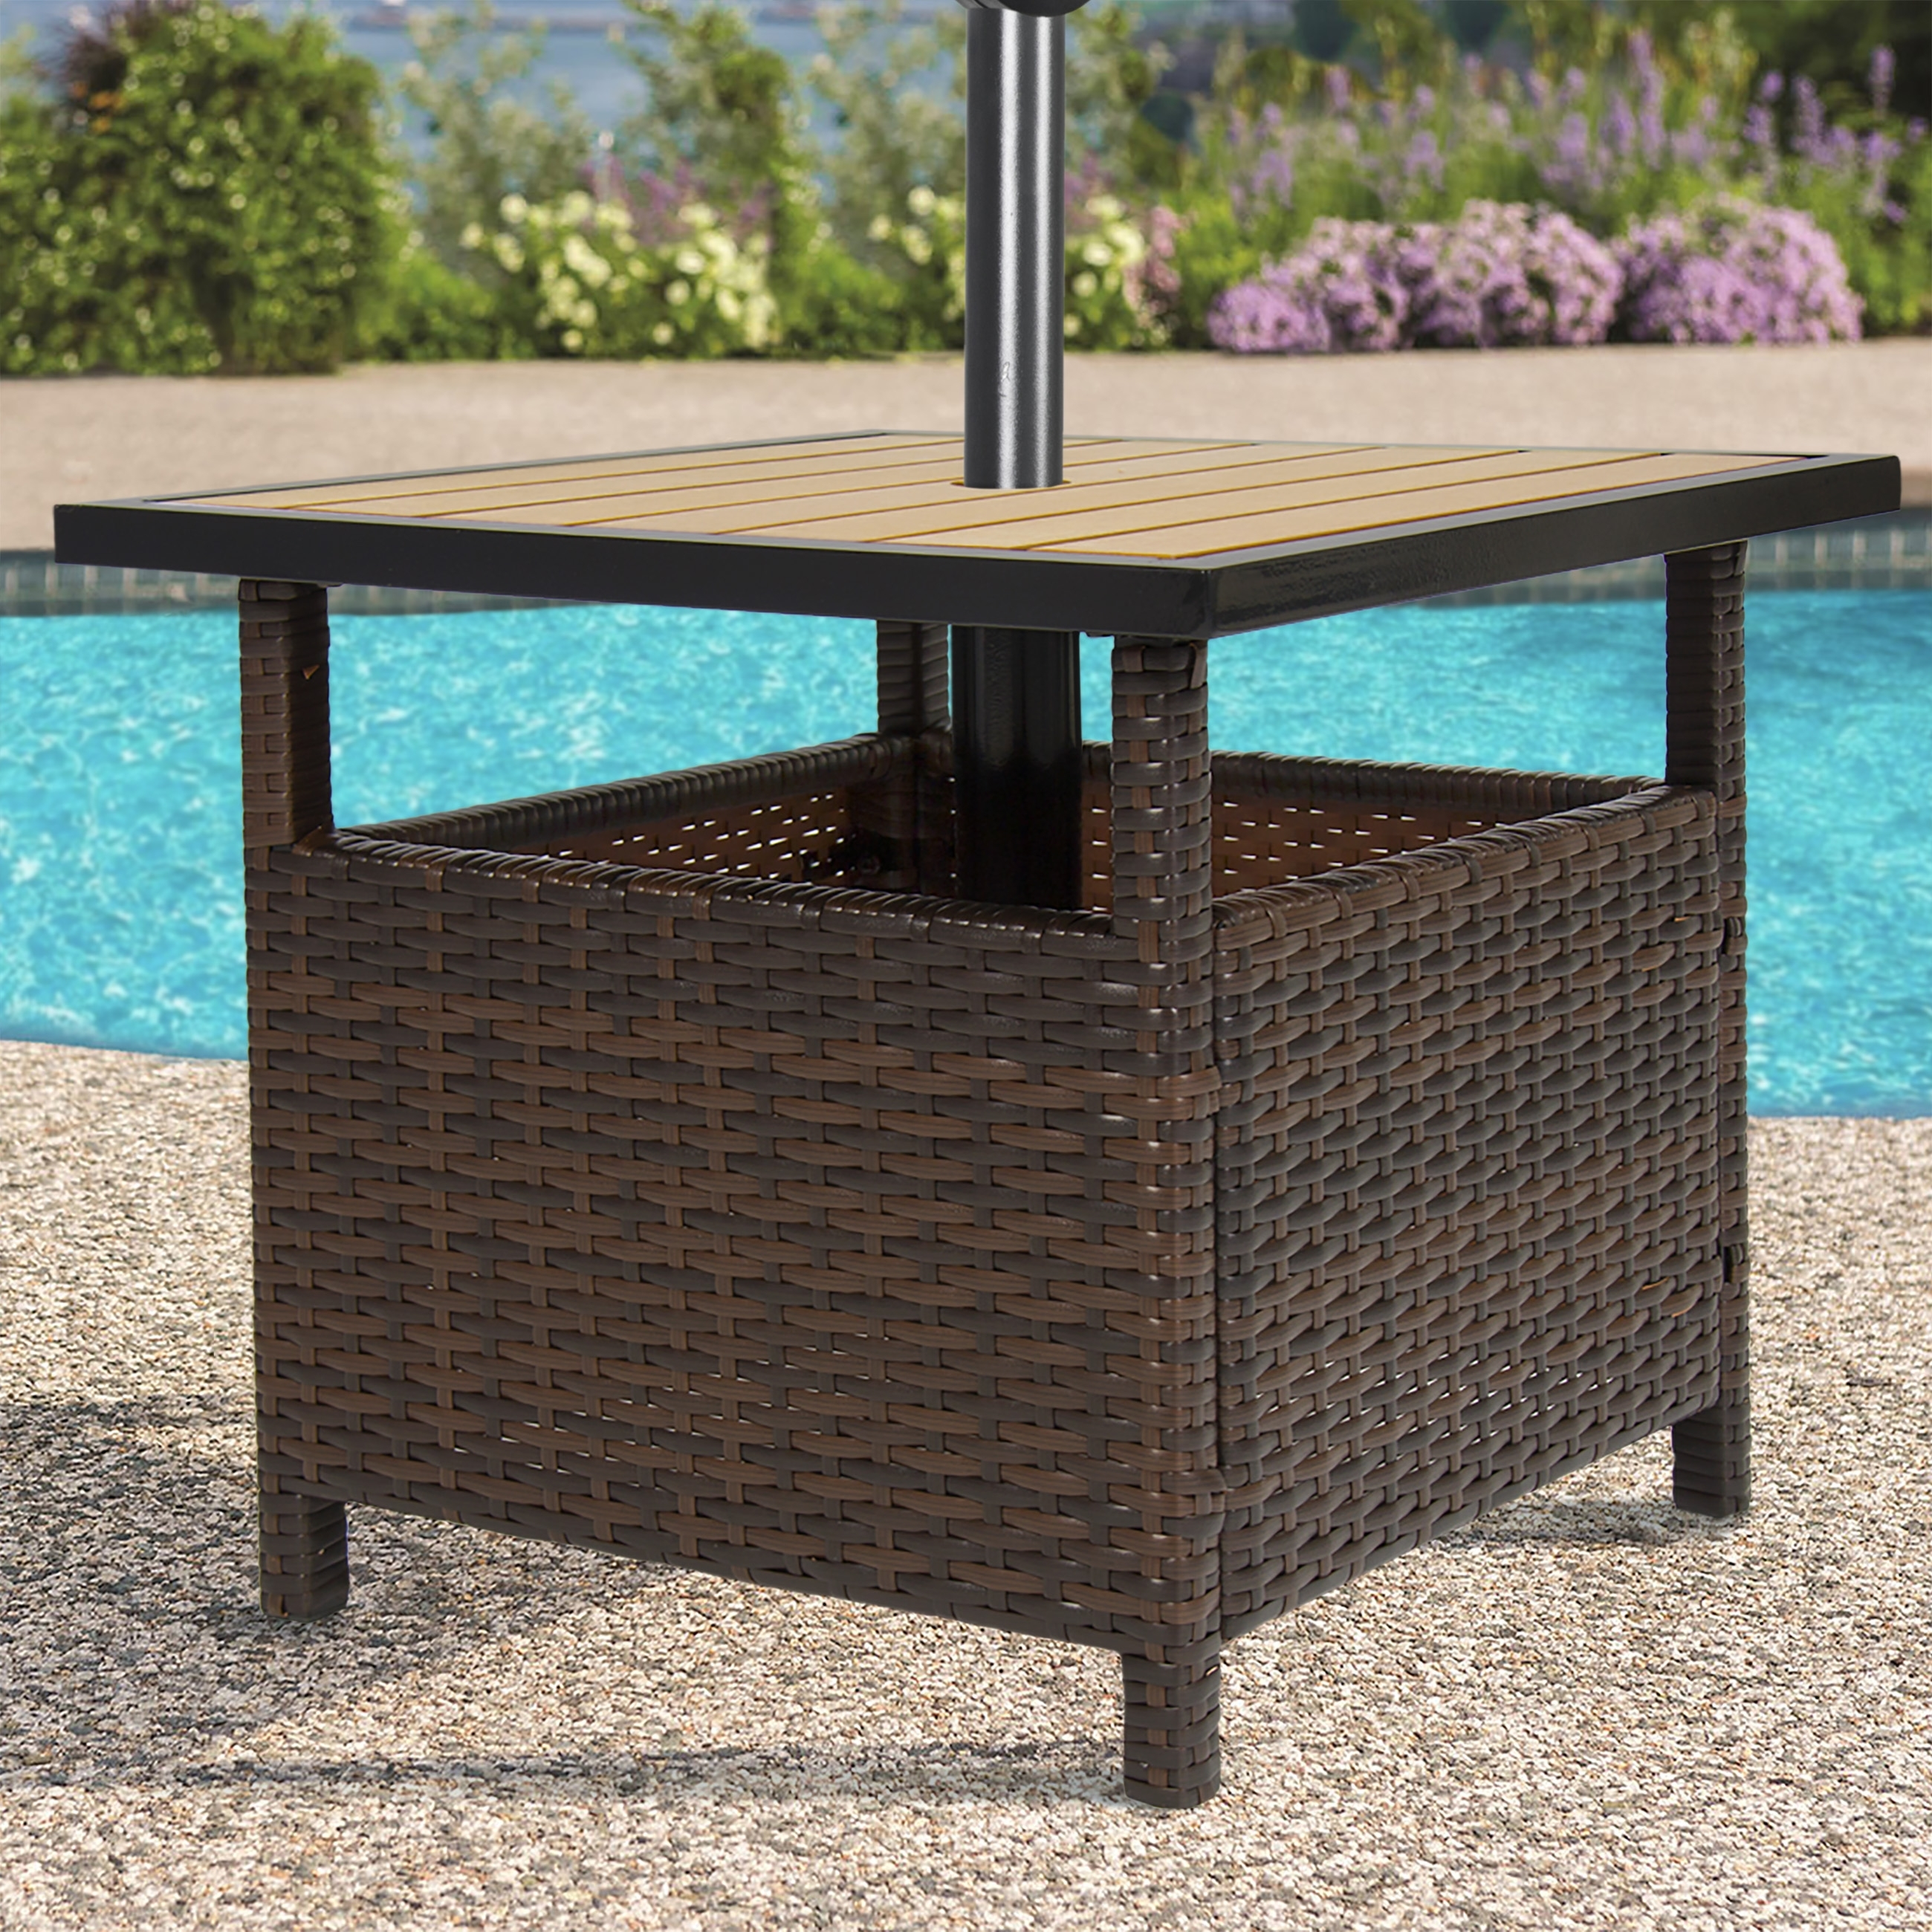 Widely Used Best Choice Products Outdoor Furniture Wicker Rattan Patio Umbrella With Patio Umbrella Stand Side Tables (View 2 of 20)